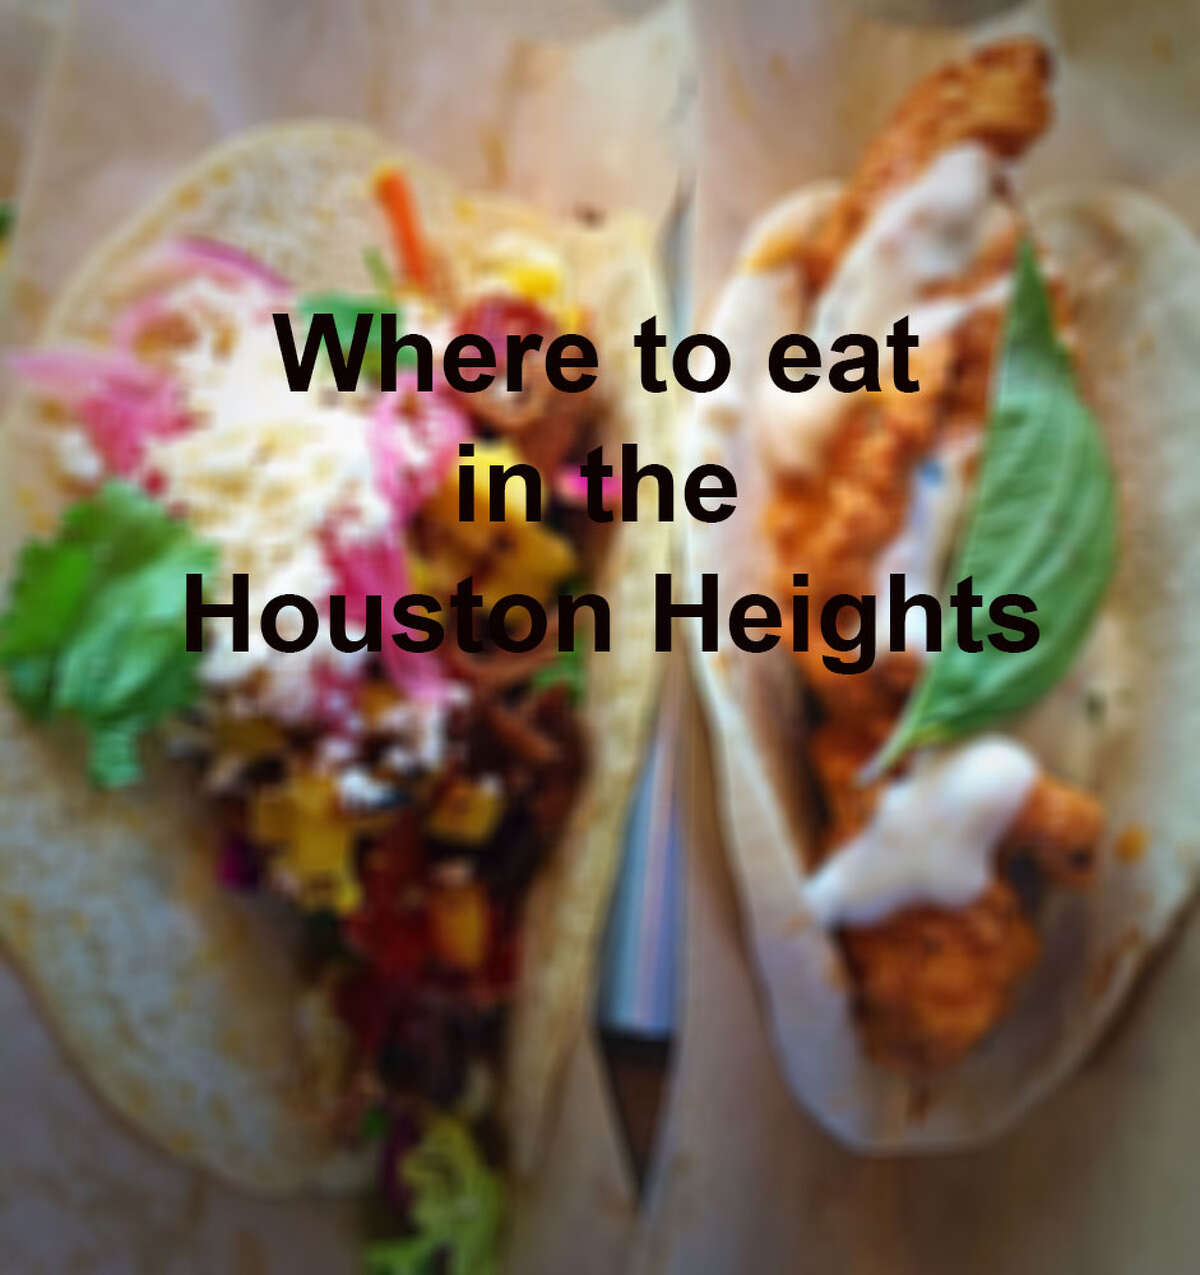 PHOTOS: Where to eat in the HeightsIf you're still hungry after White Linen Night, check out these highly-rated restaurants in the area.>>>See more for top-rated Heights restaurants, according to Yelp reviews...